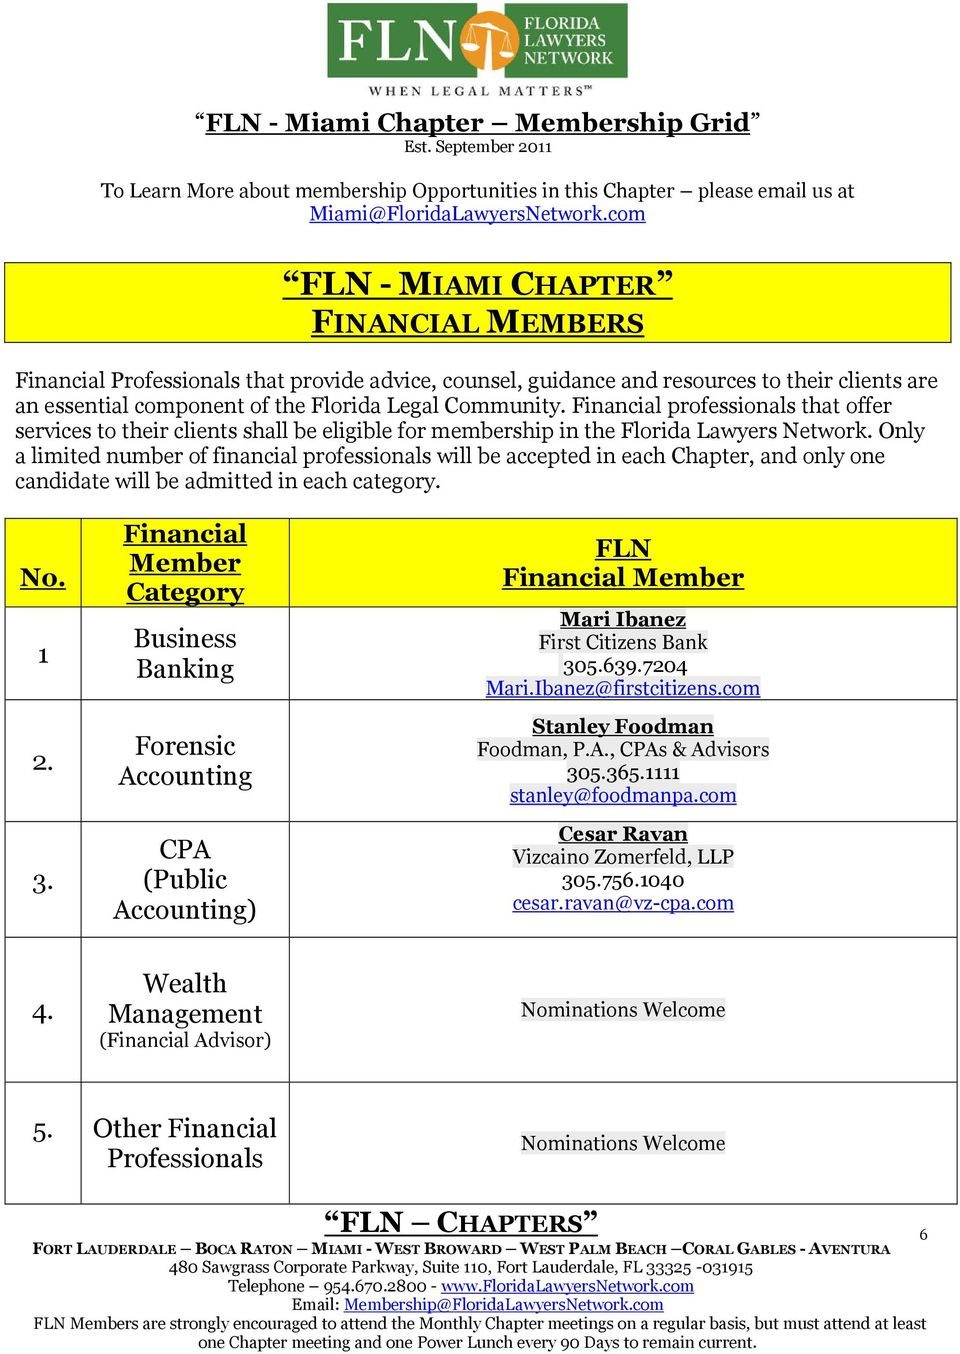 Only a limited number of financial professionals will be accepted in each Chapter, and only one candidate will be admitted in each category. No. 1 2. 3.